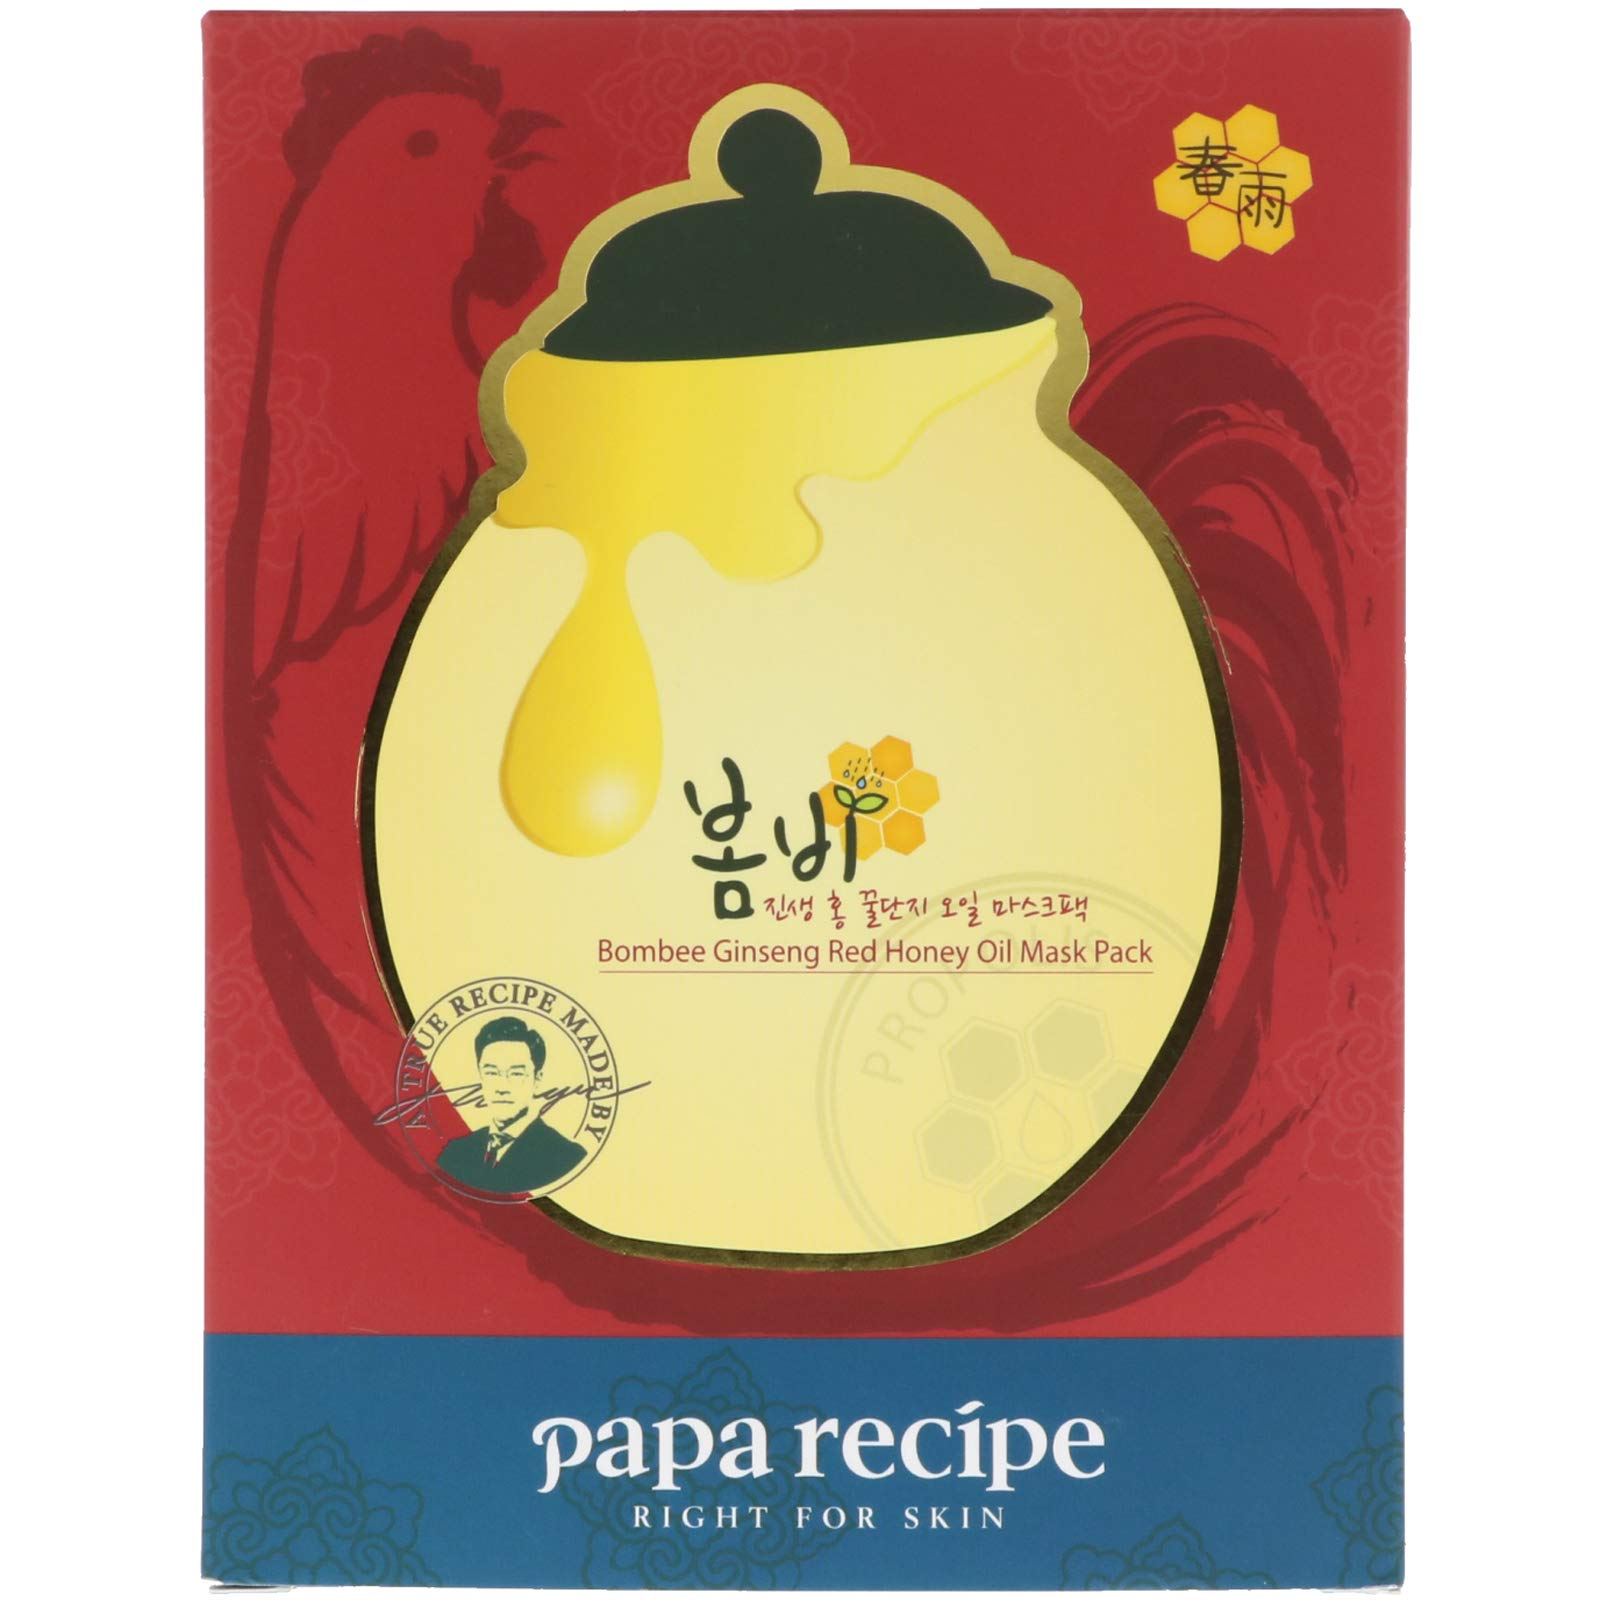 Papa Recipe Bombee Ginseng Red Honey Oil Mask Pack 10 Masks 20 g Each by Papa Recipe